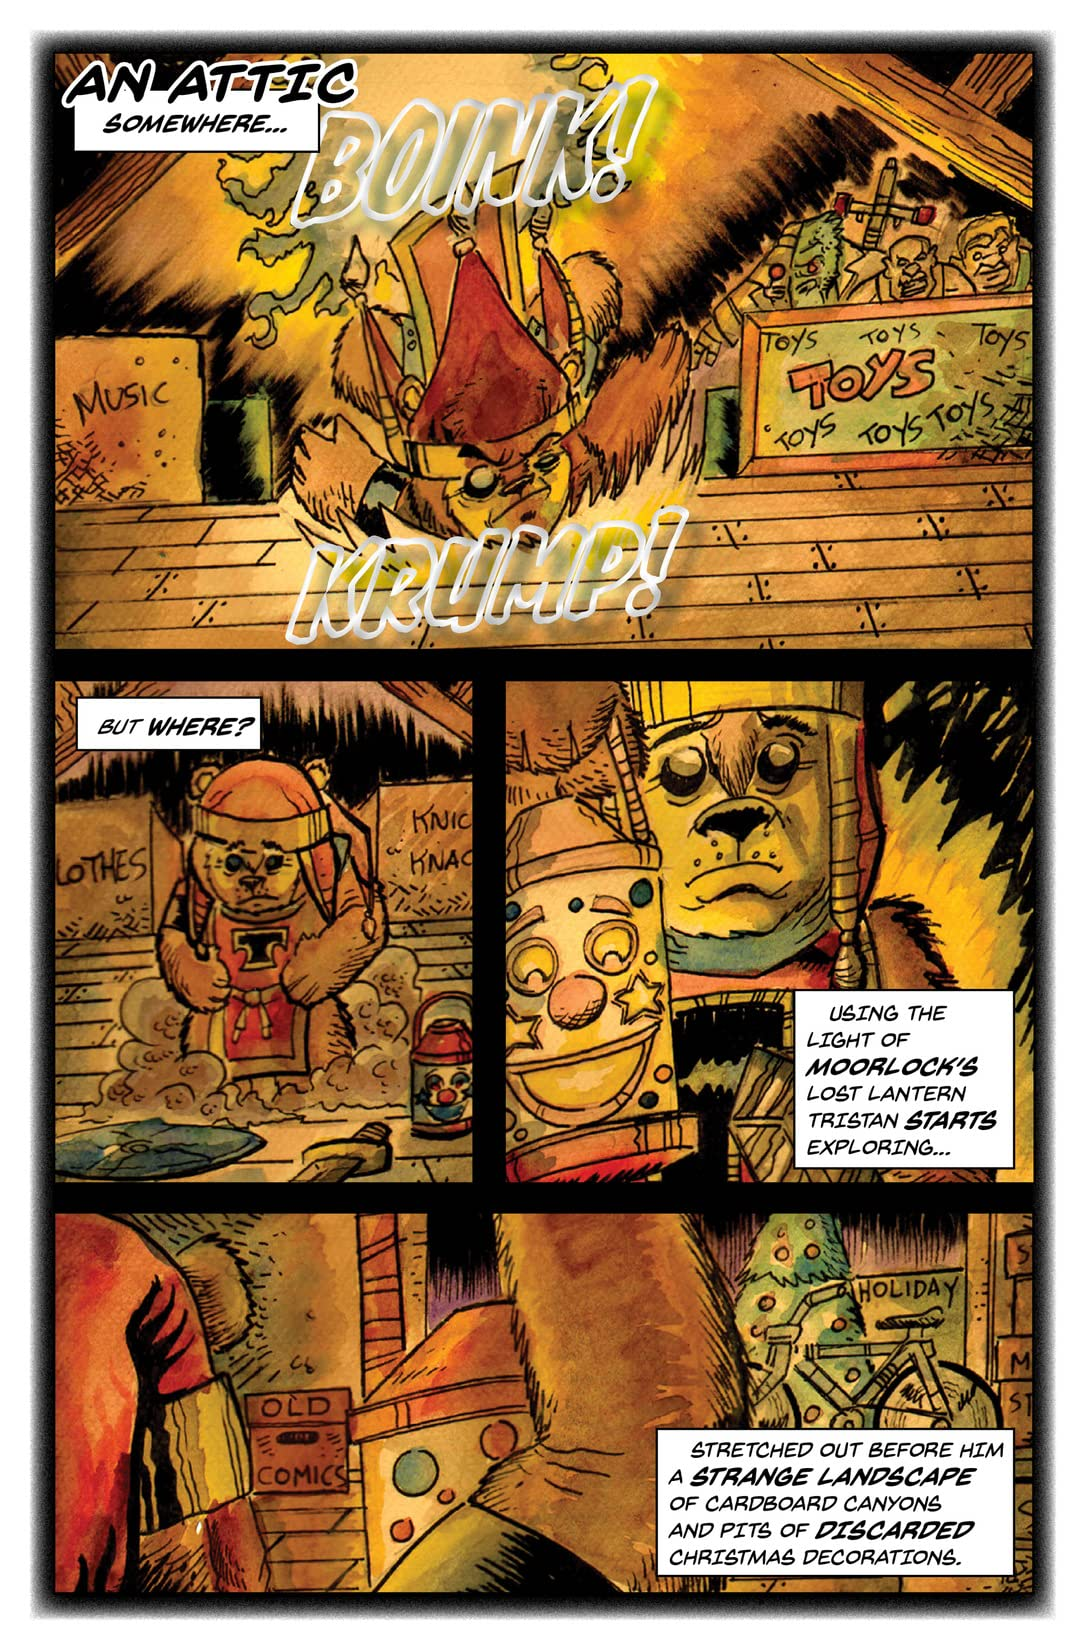 Tristan and the Cuddly Defenders #2